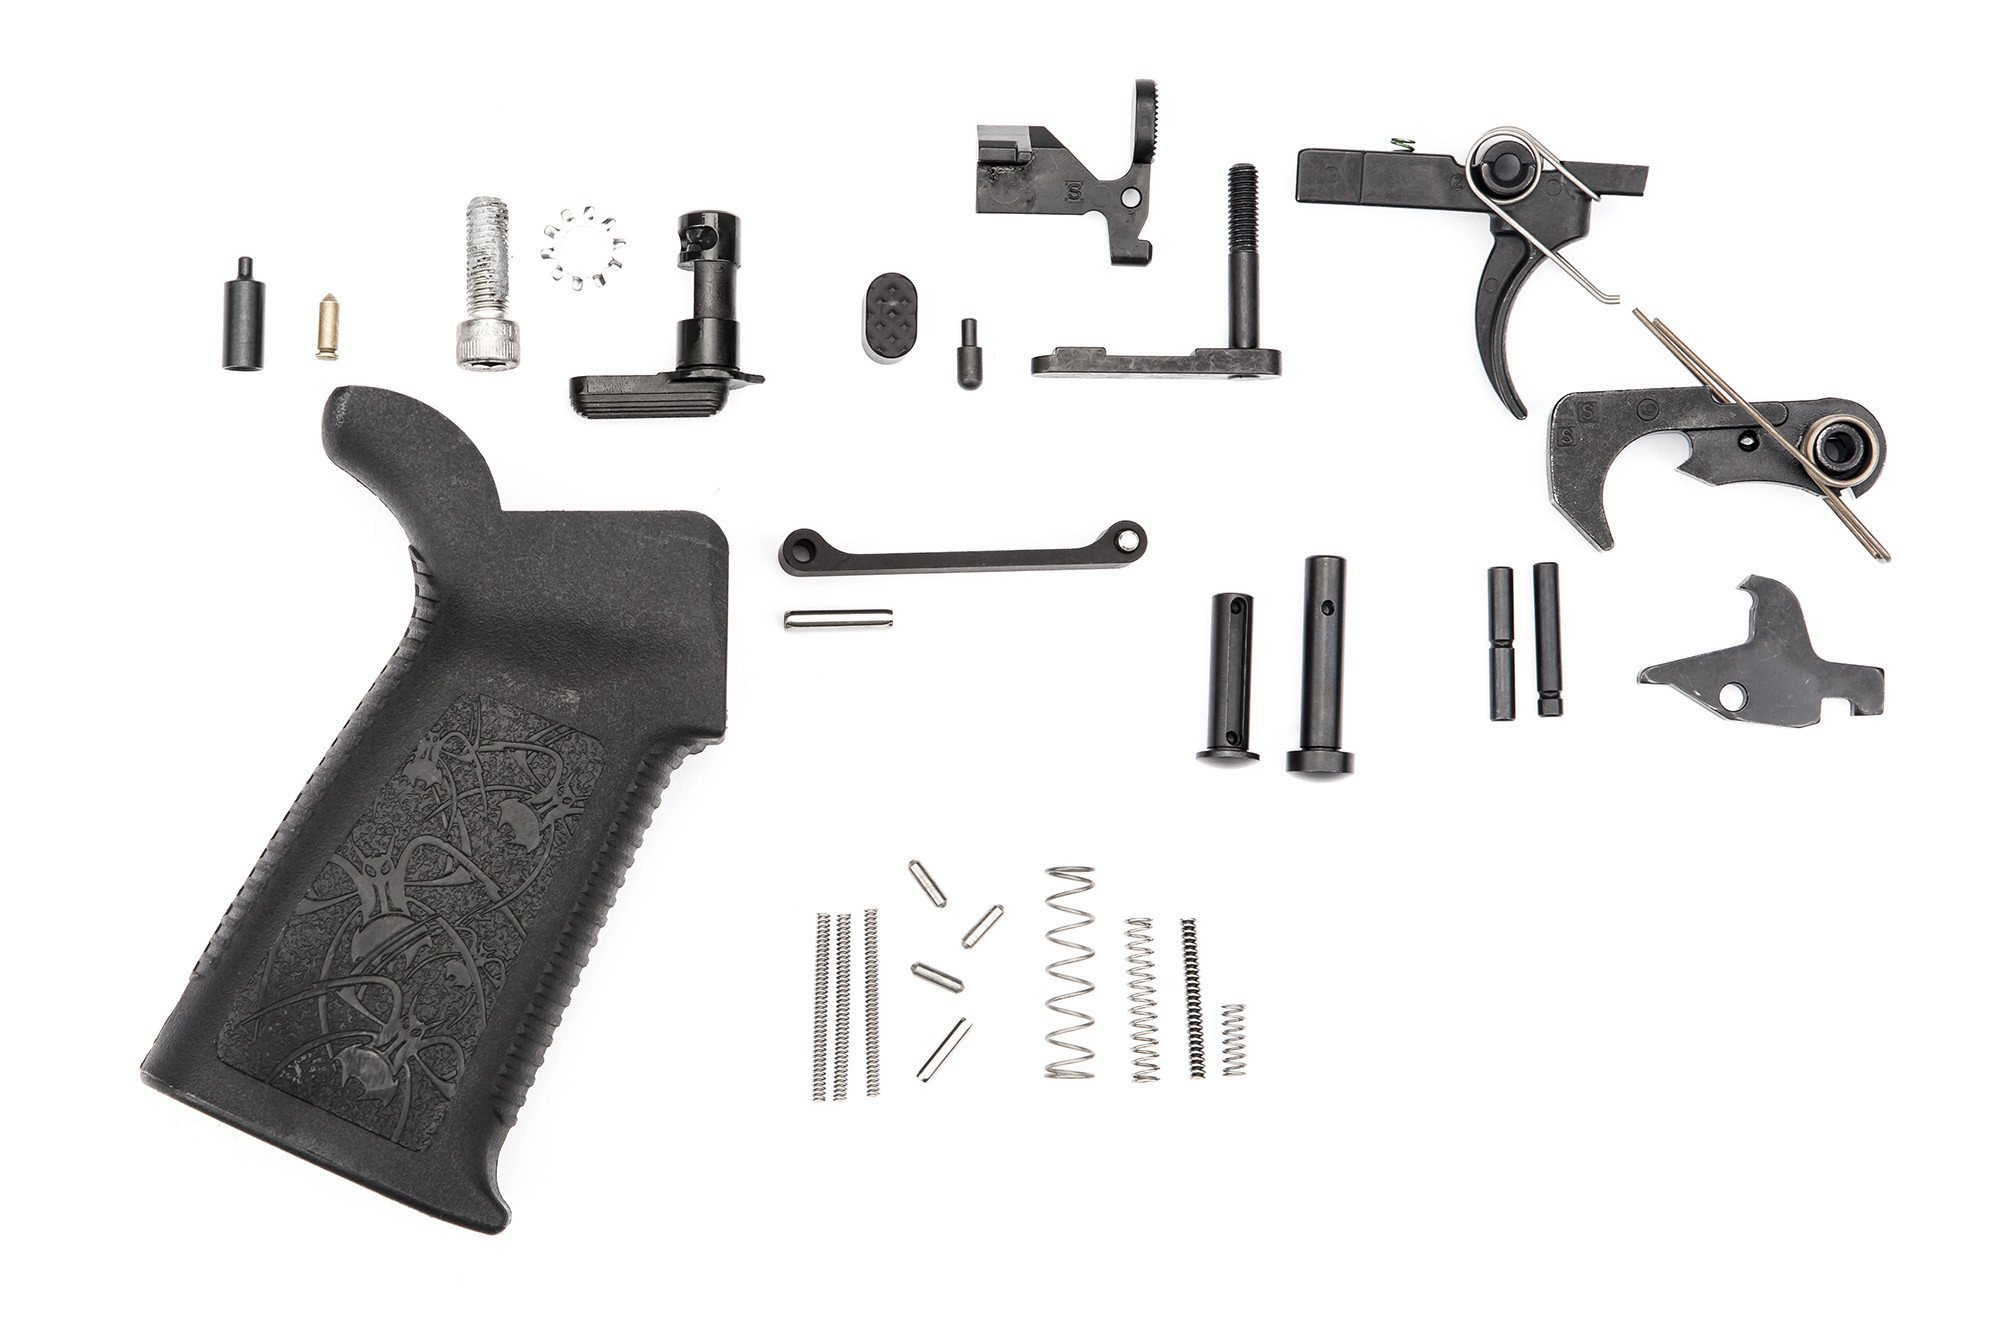 Standard Lower Parts Kit